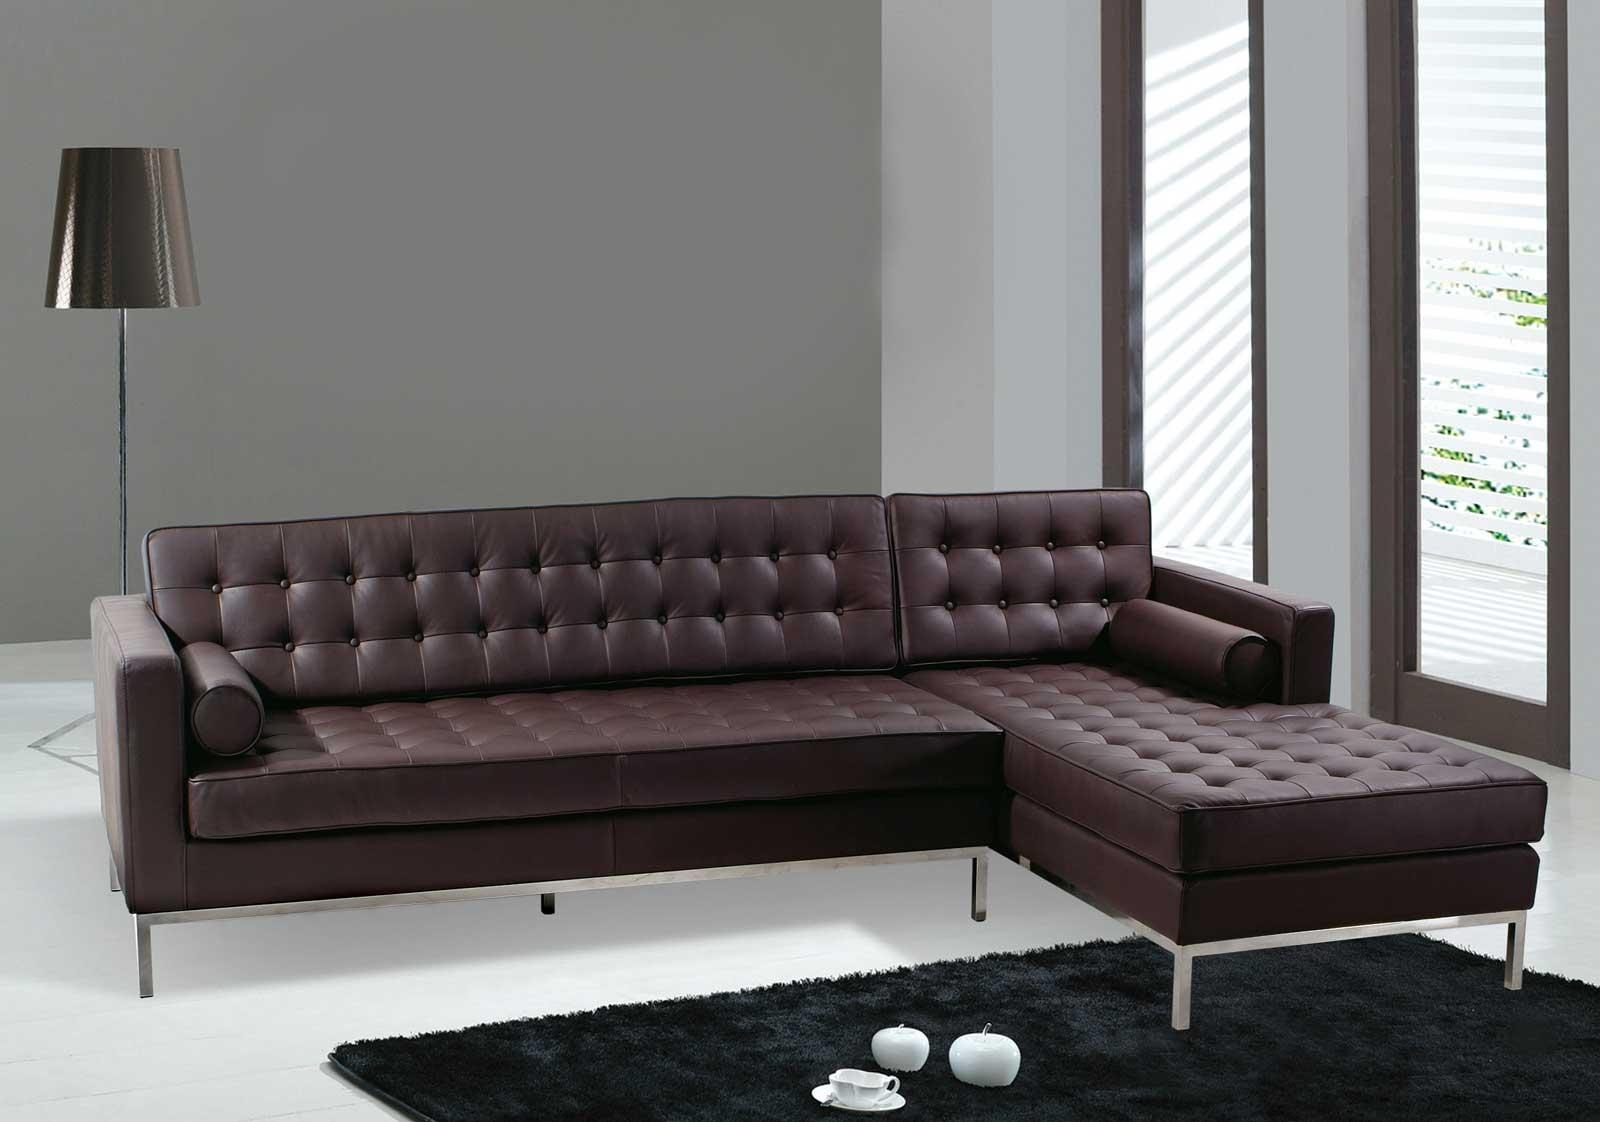 Contemporary Leather Sofas Italian : Modern Contemporary Leather Pertaining To Leather Sofas (View 19 of 21)